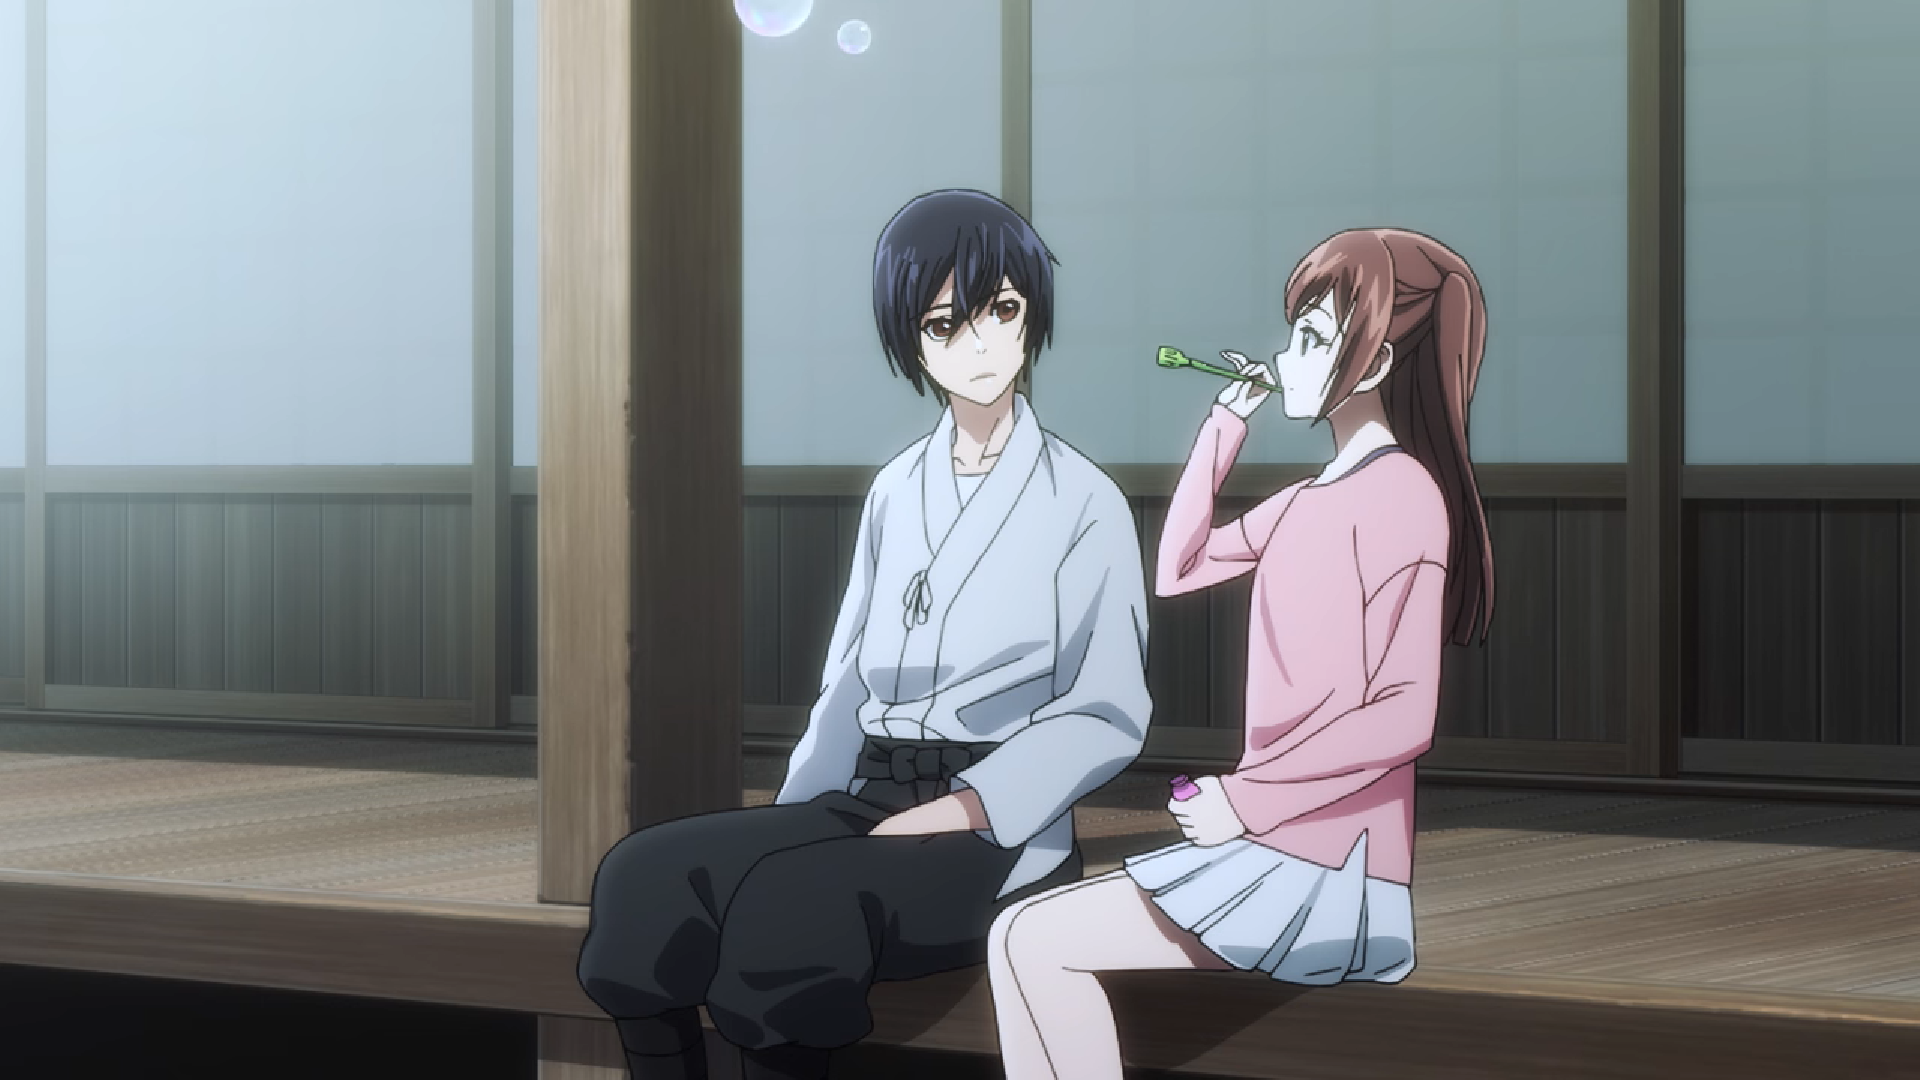 Virtual Haven - Sword Gai The Animation Episode 13 Second Image.png